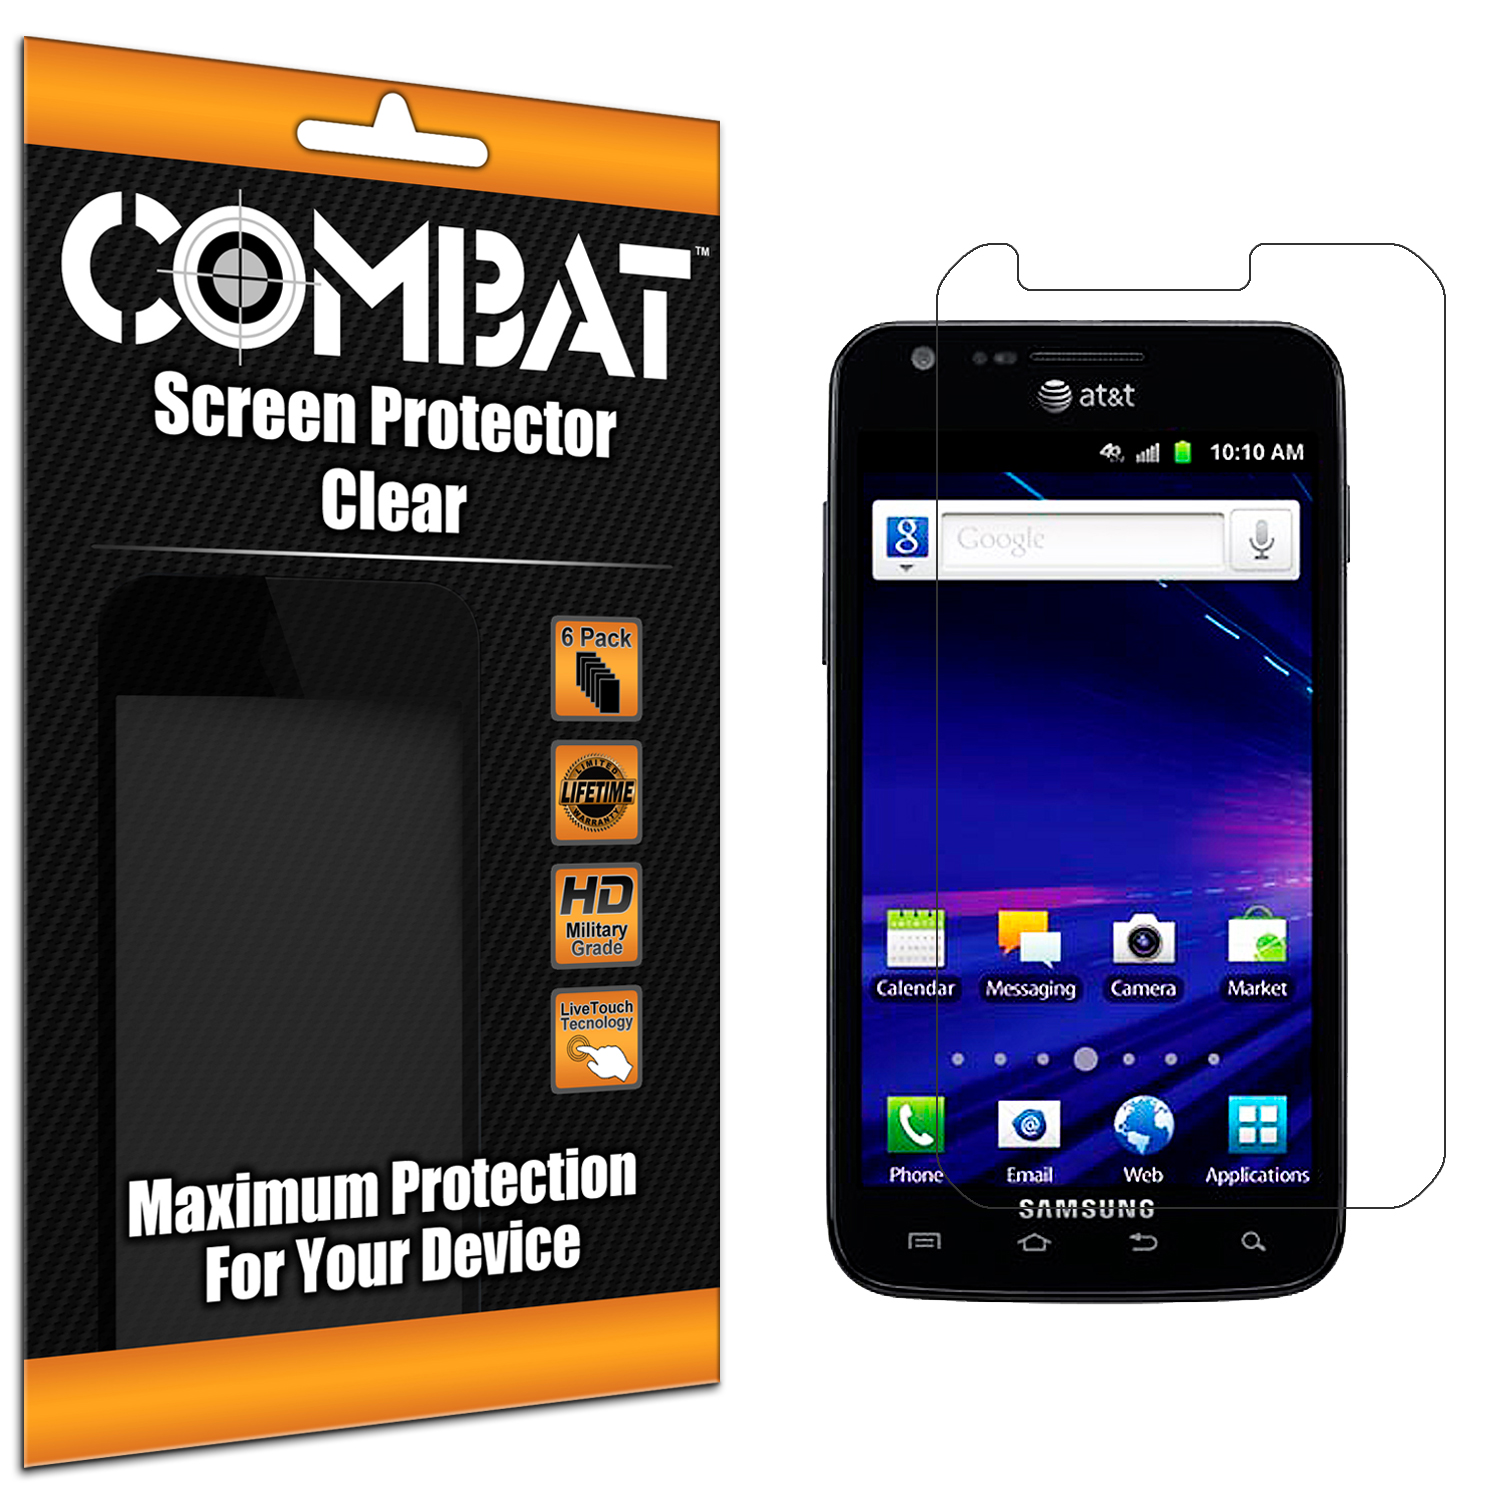 Samsung Skyrocket i727 Combat 6 Pack HD Clear Screen Protector